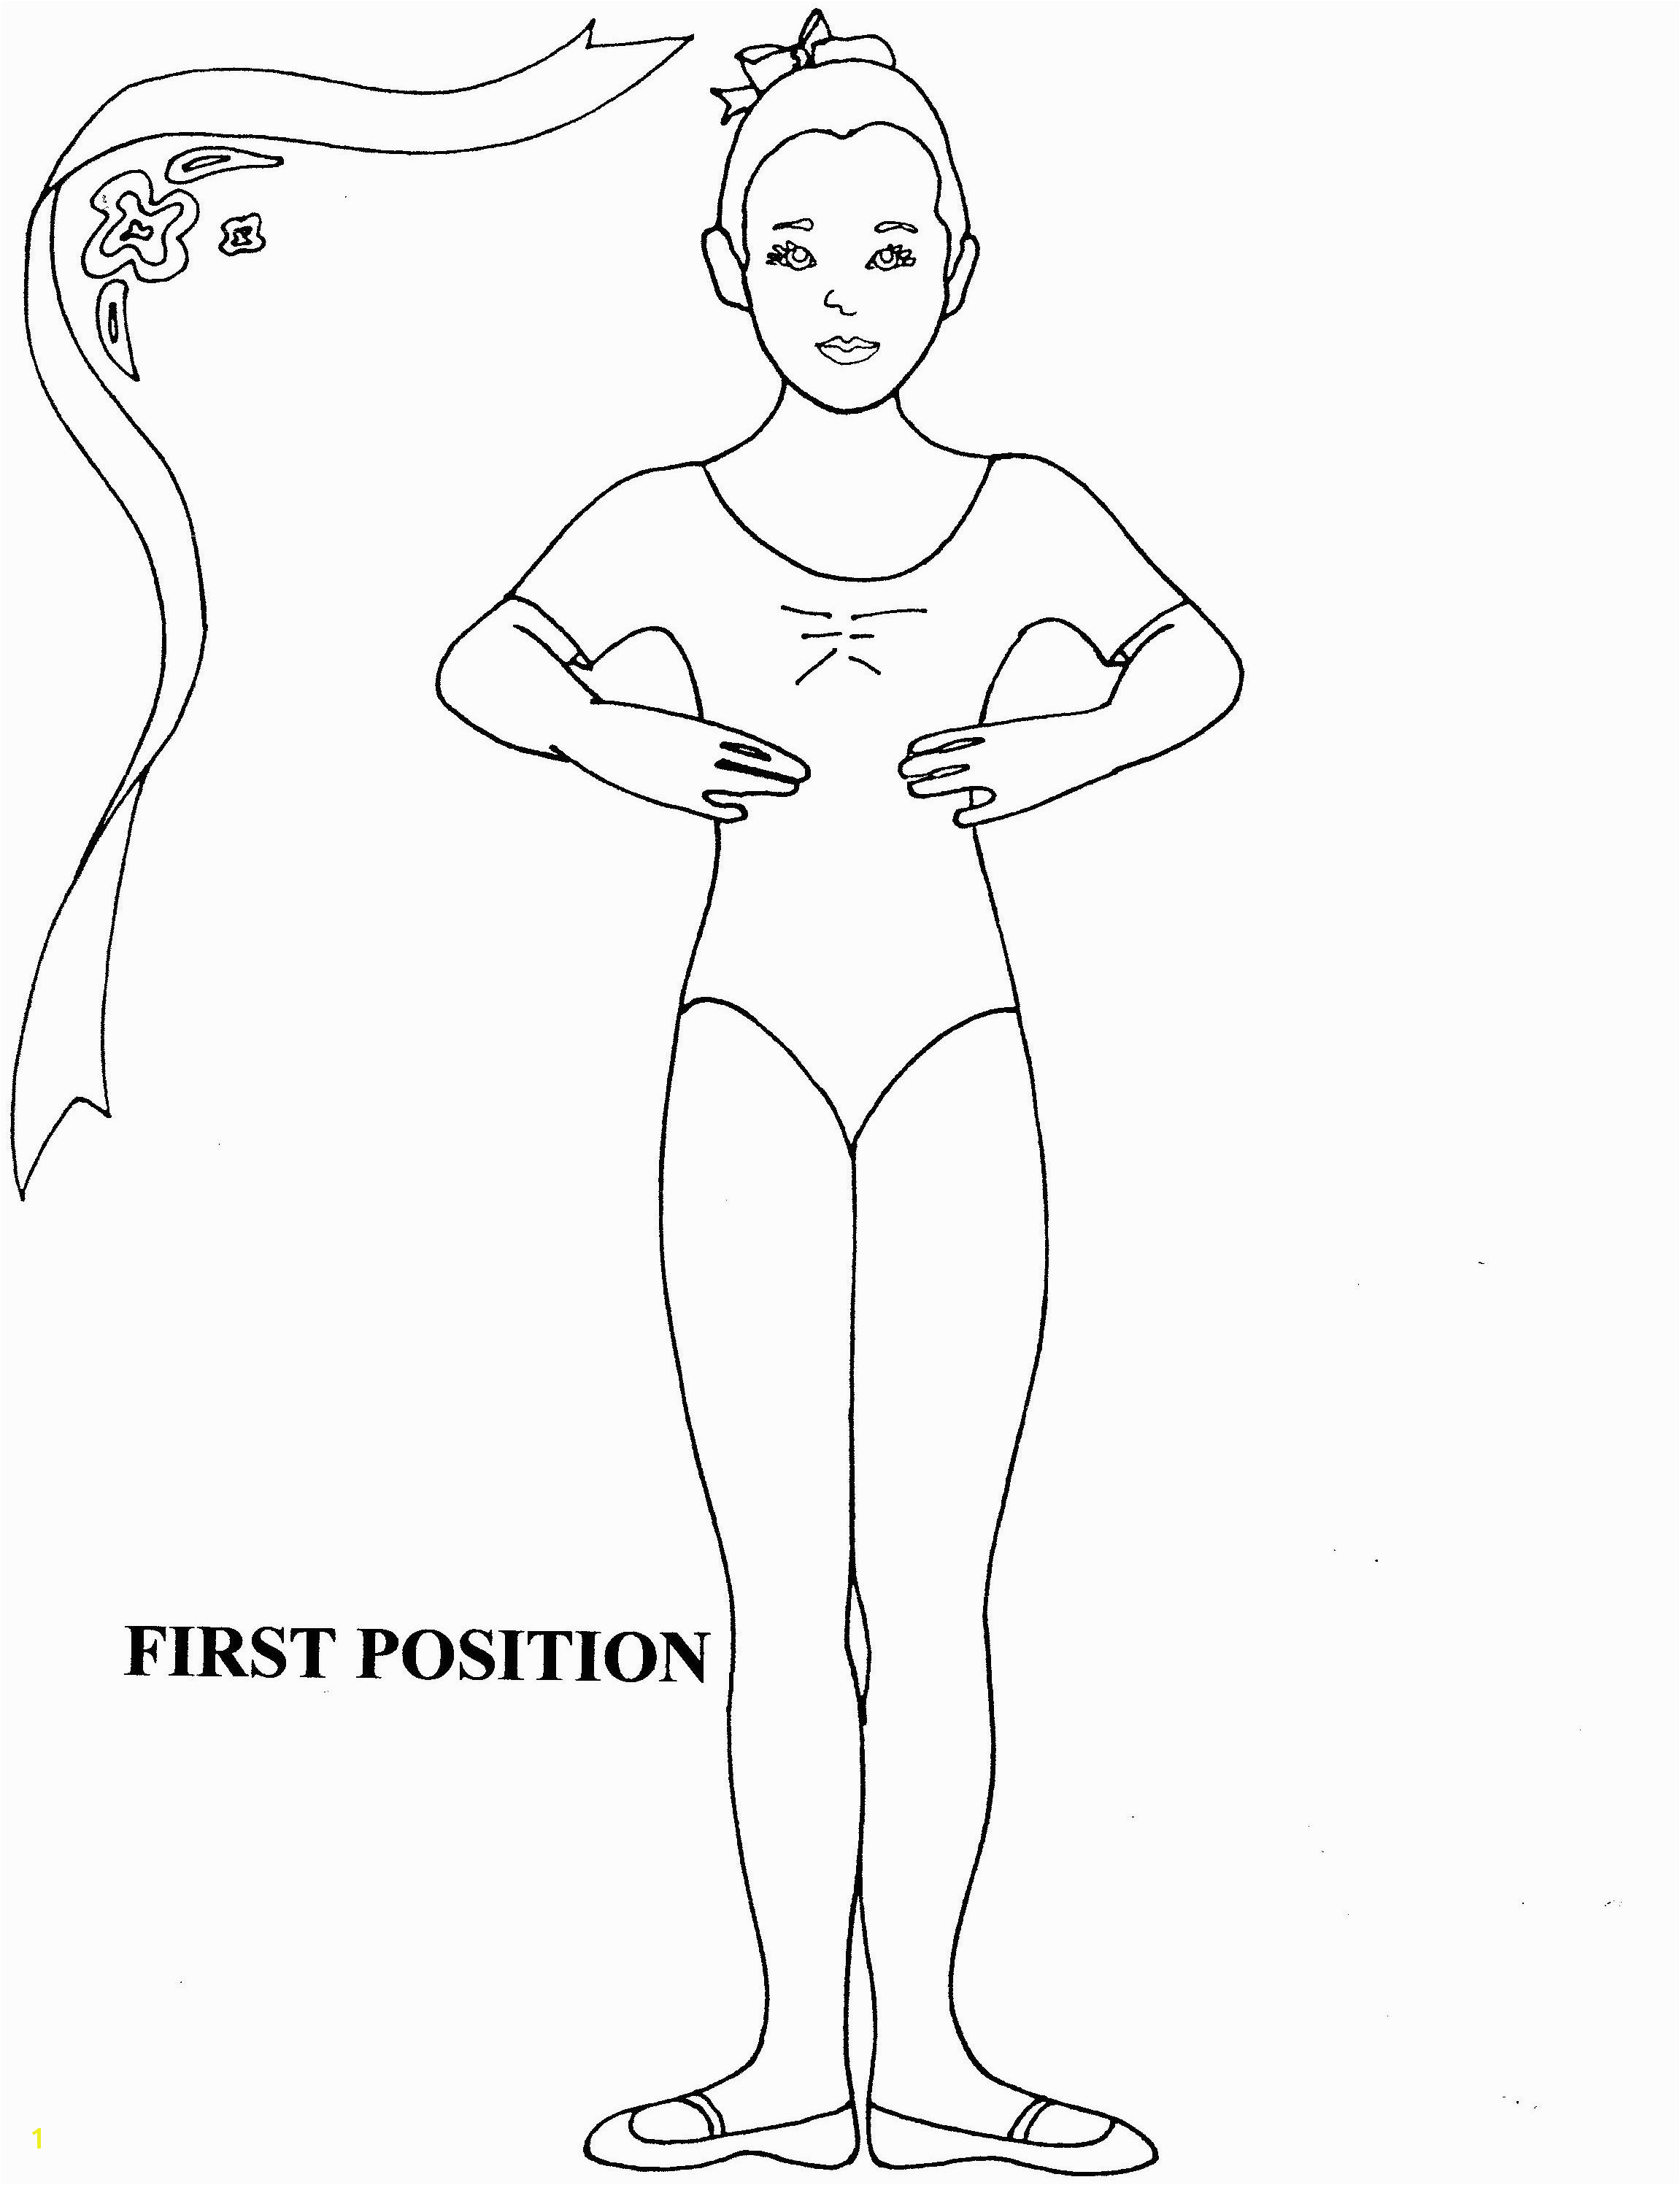 Ballerina Coloring Pages Pdf Ballerina Kristyn is Training Coloring Pages Giselle Main Character